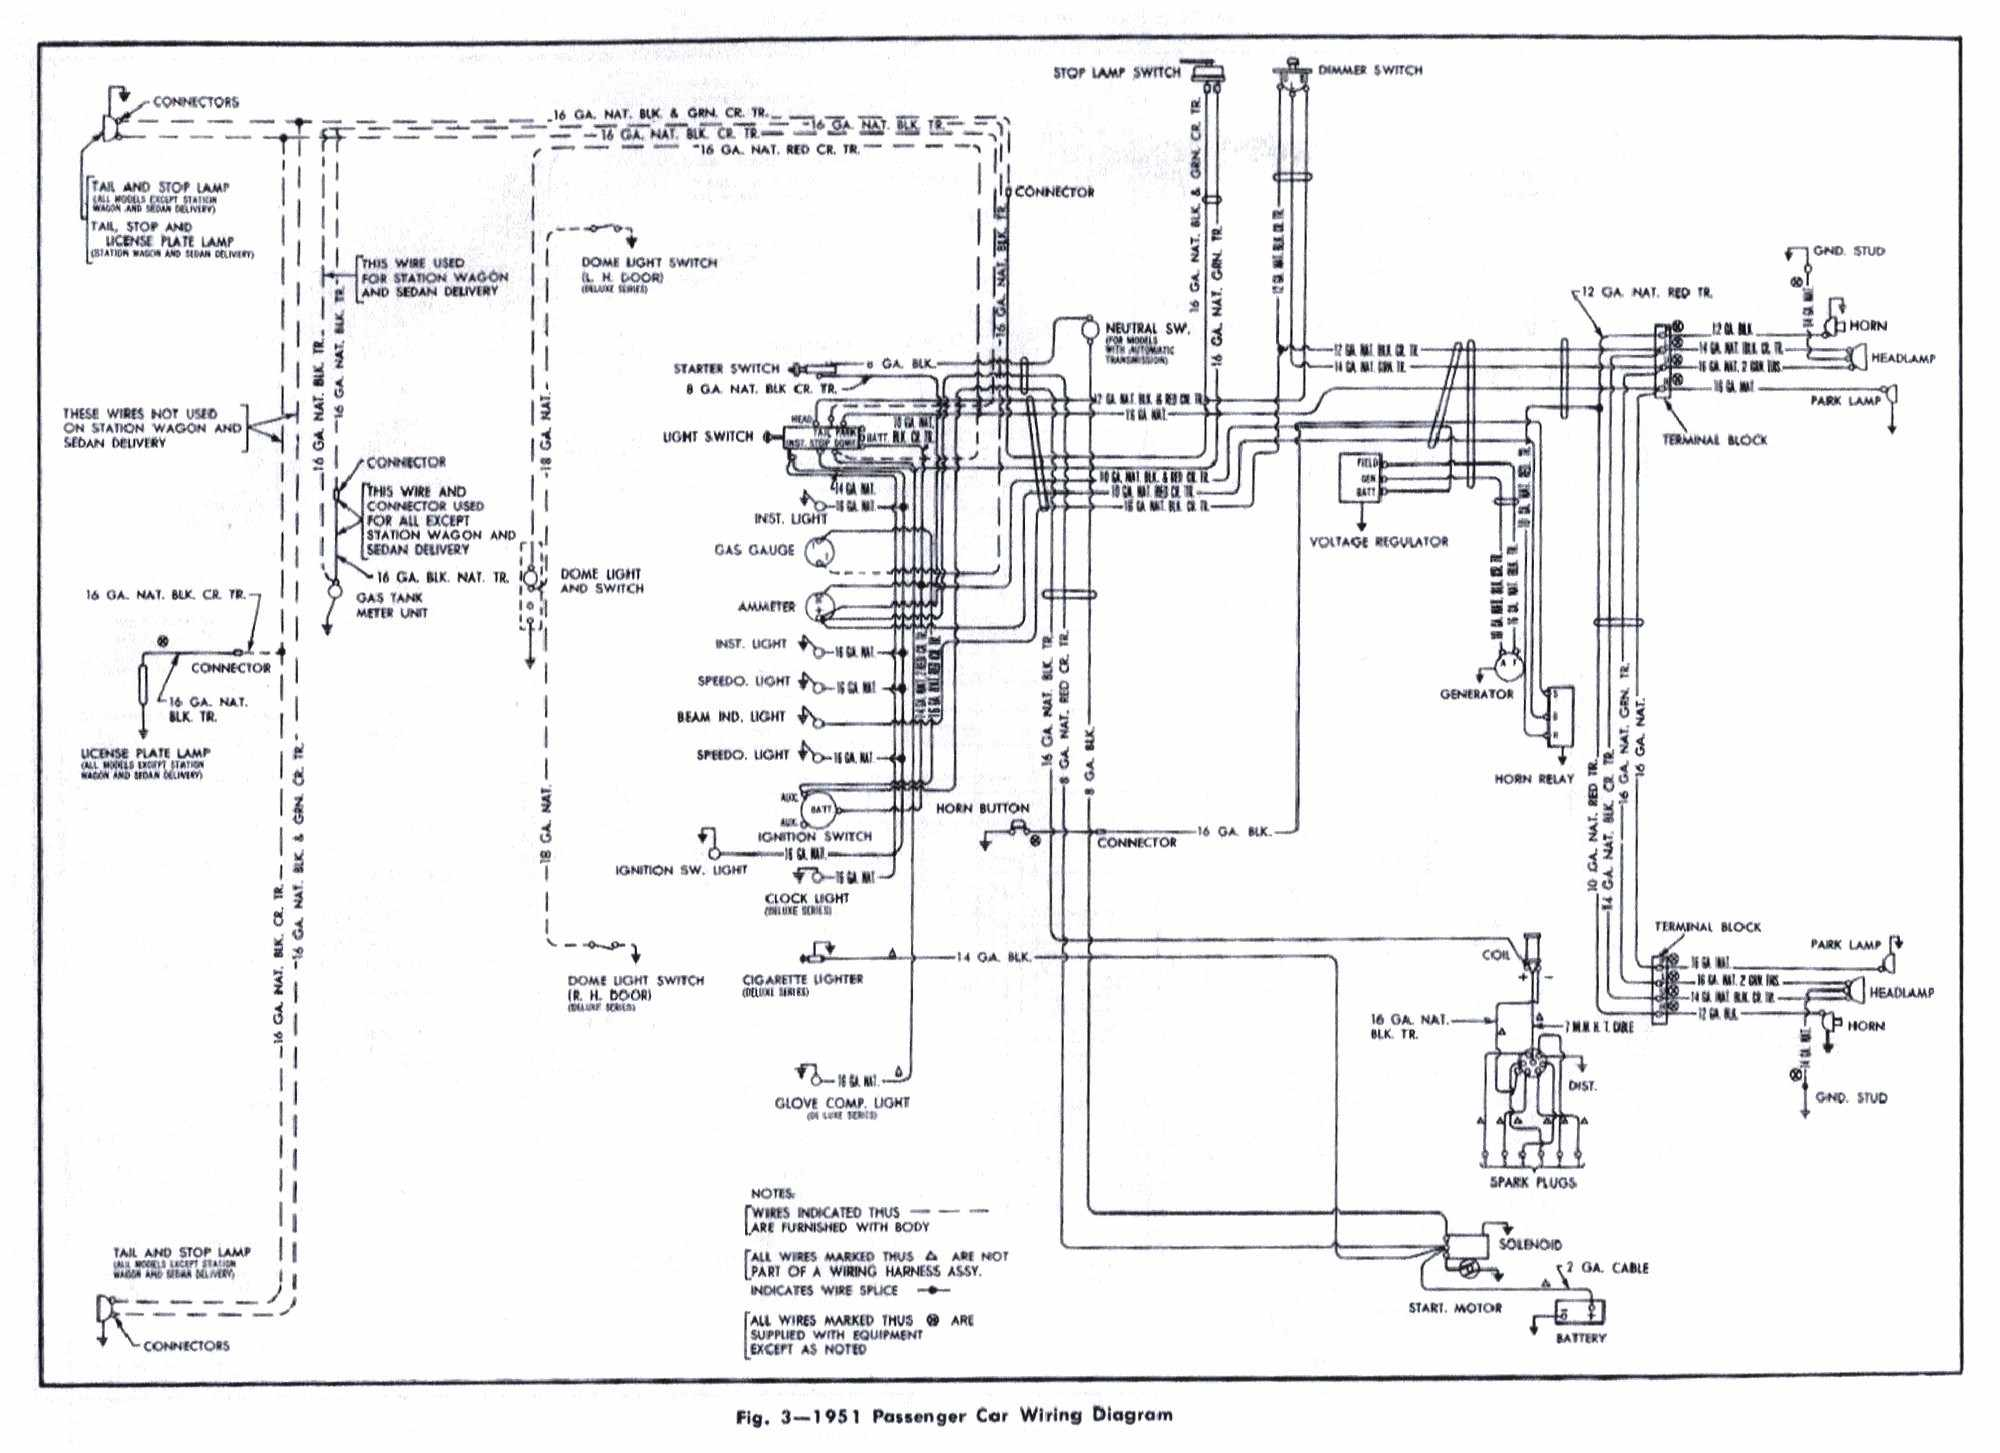 1998 chevy s10 wiring diagram auto zone